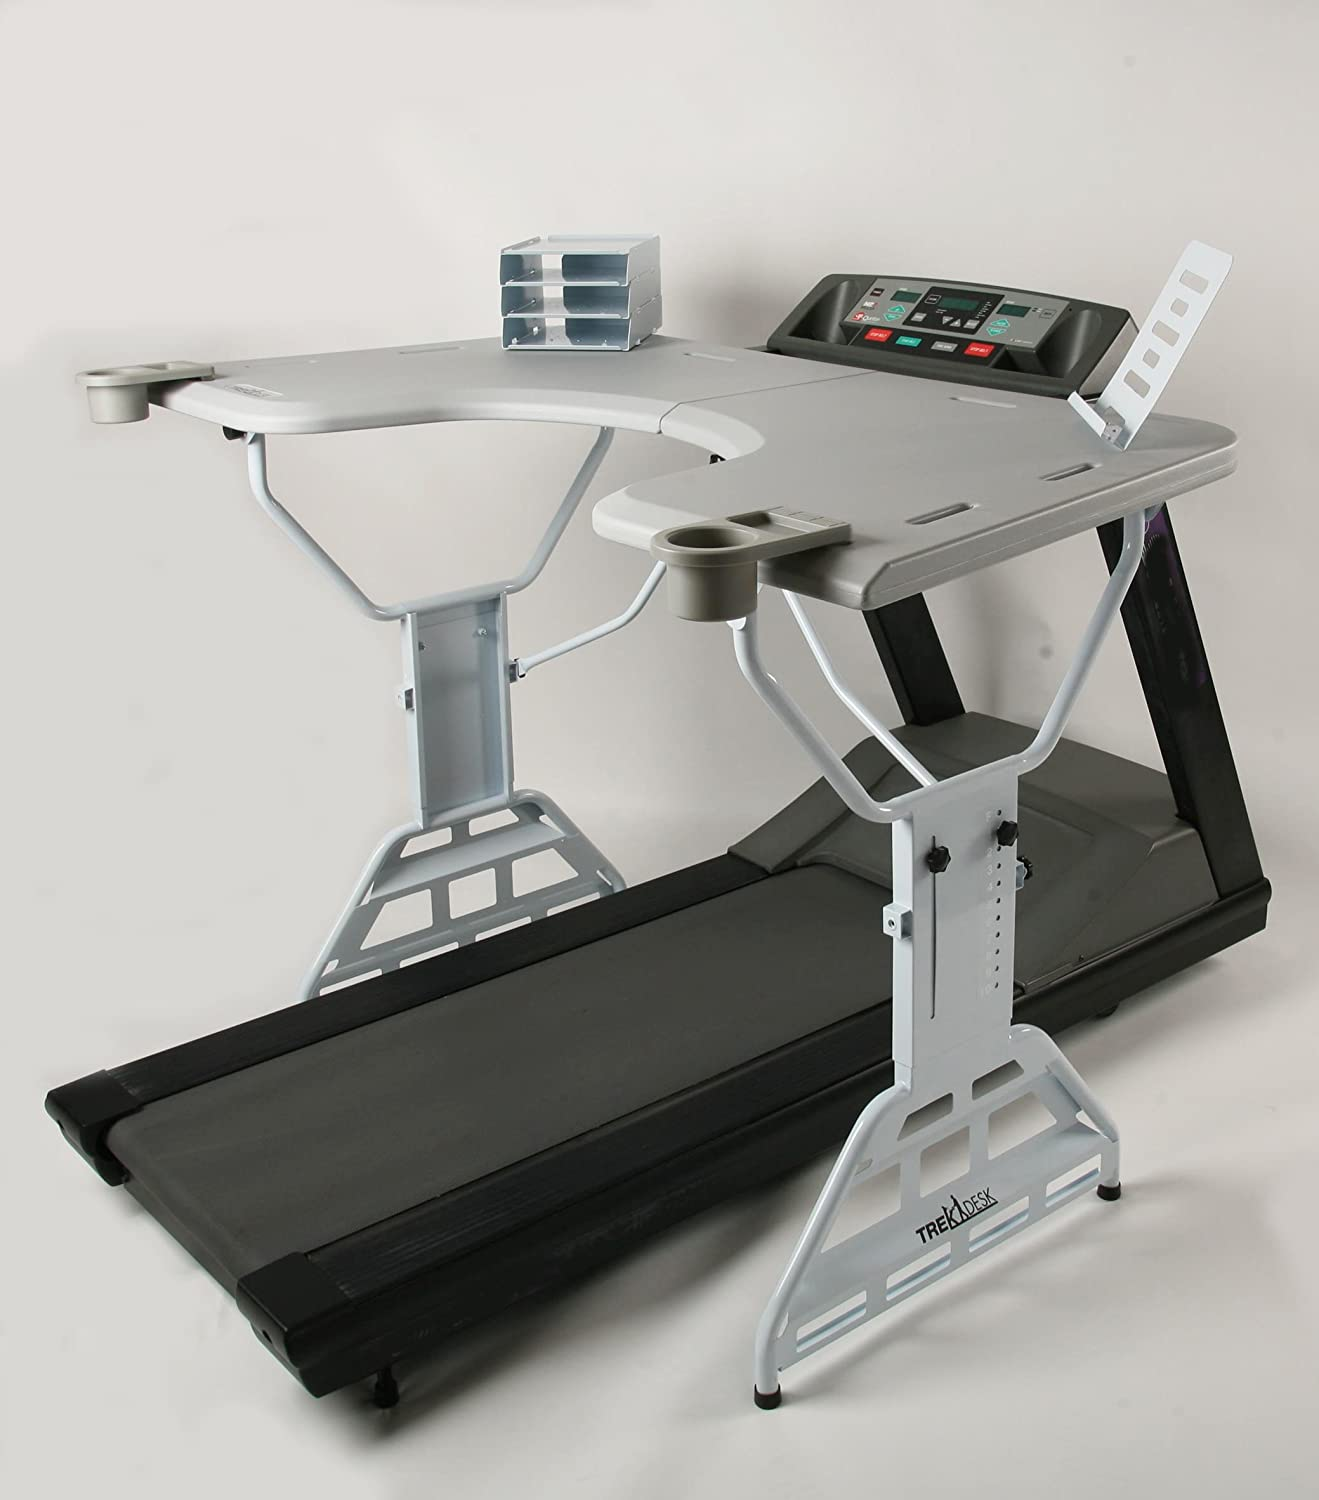 Nice Amazon.com : TrekDesk Treadmill Desk   Walking And Standing Desk For  Treadmill   Perfect Treadmill Workstation : Exercise Treadmills : Sports U0026  Outdoors